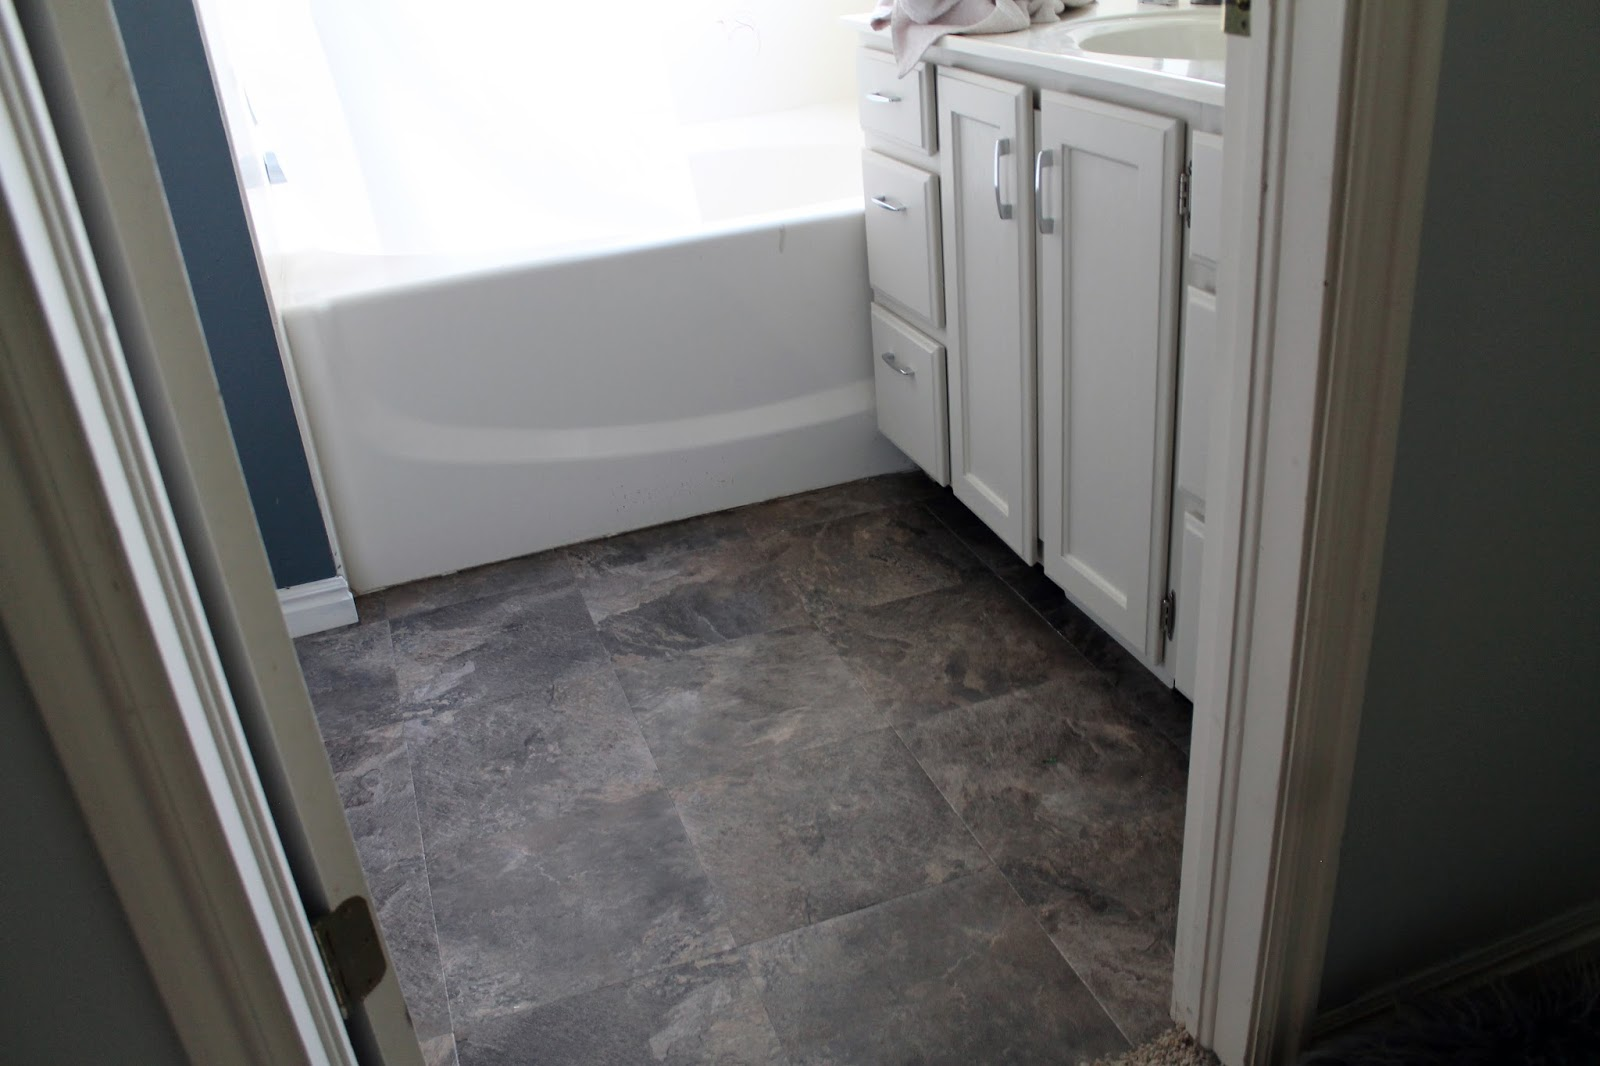 peel and stick bathroom floors chris 25661